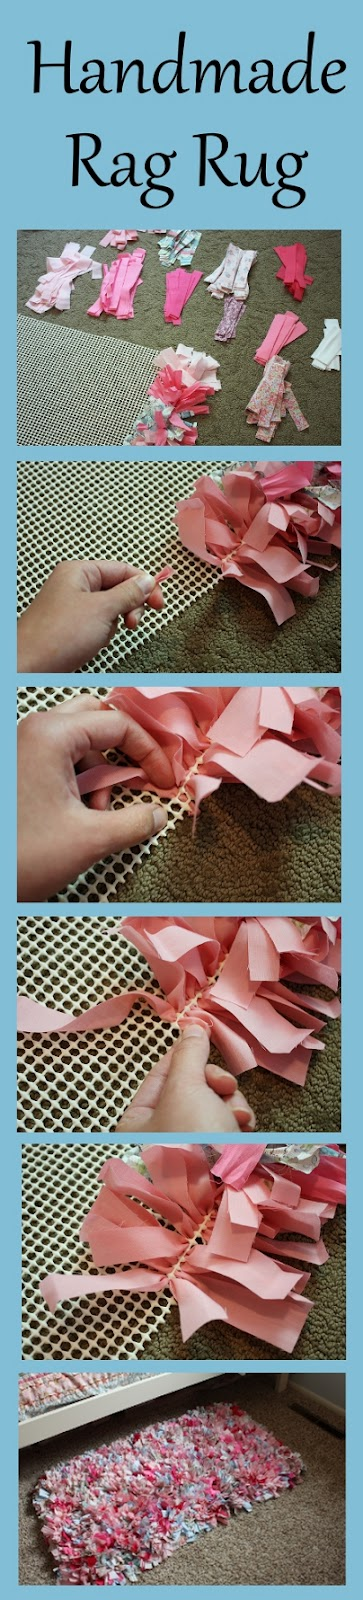 rag rug how-to